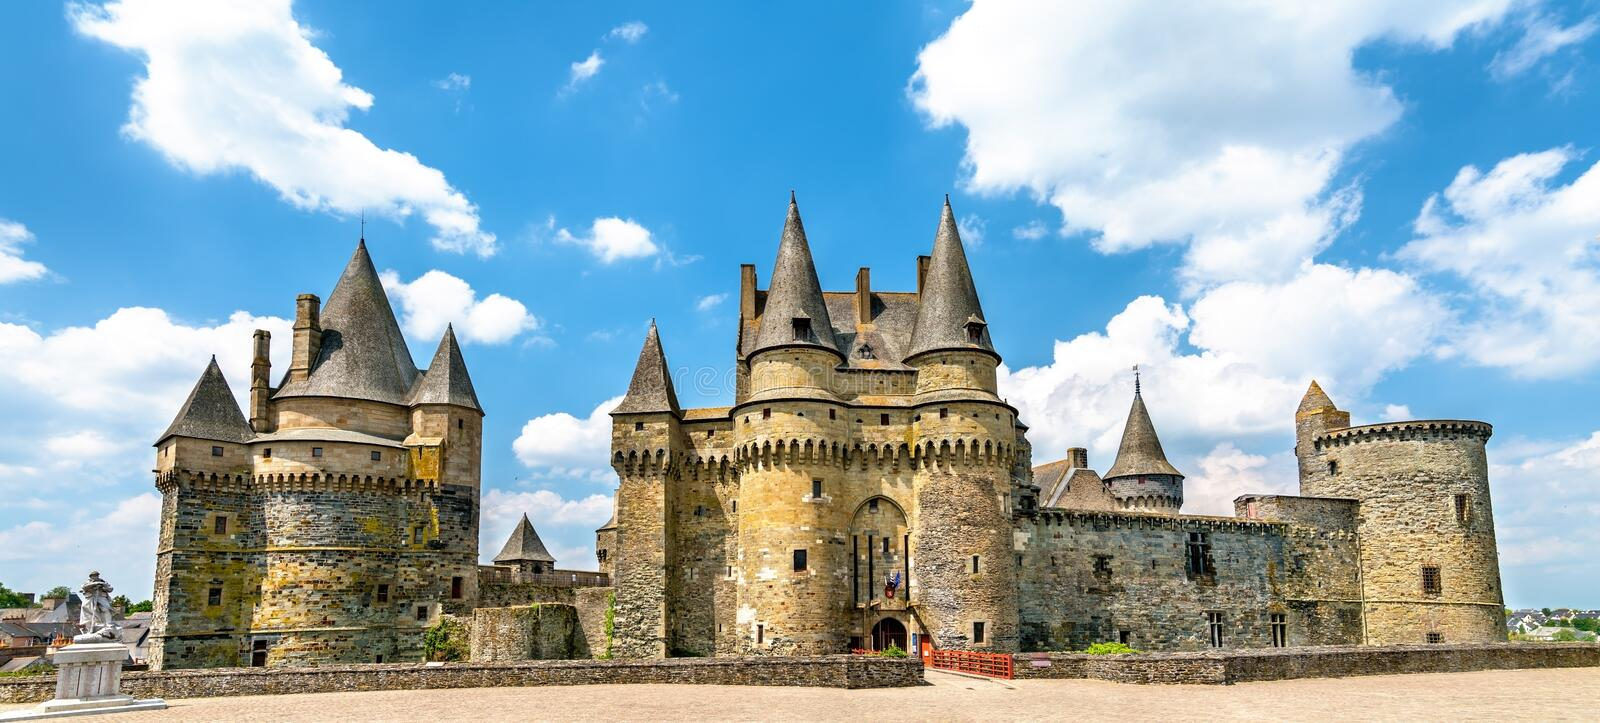 The Chateau de Vitre, a medieval castle in Brittany, France royalty free stock photo